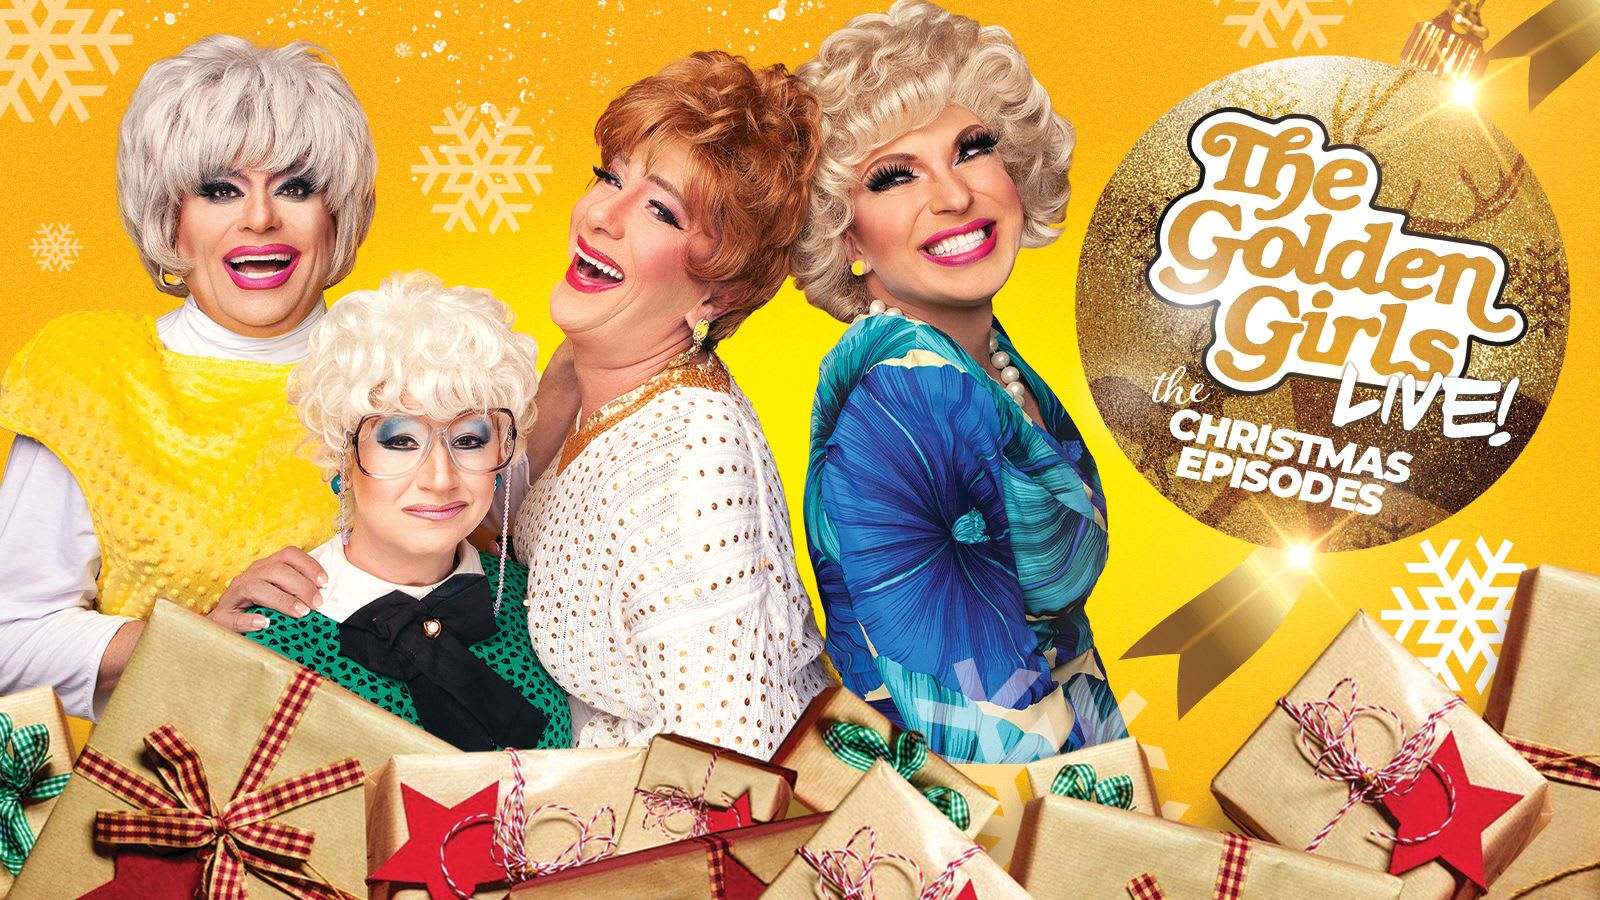 The Golden Girls Live! The Christmas Episodes